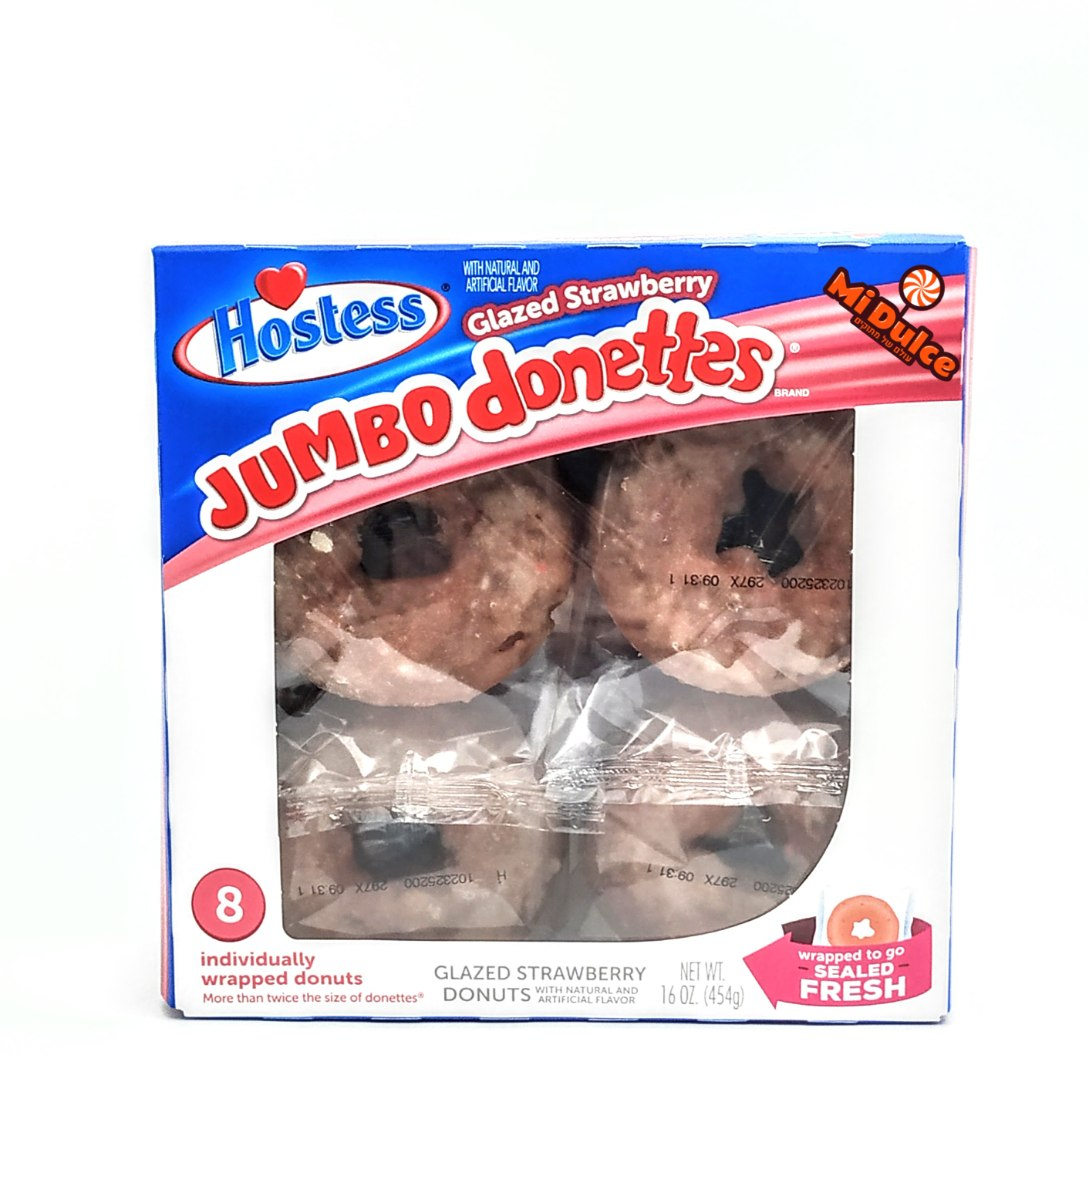 Hostess ג'מבו דונאטס תות